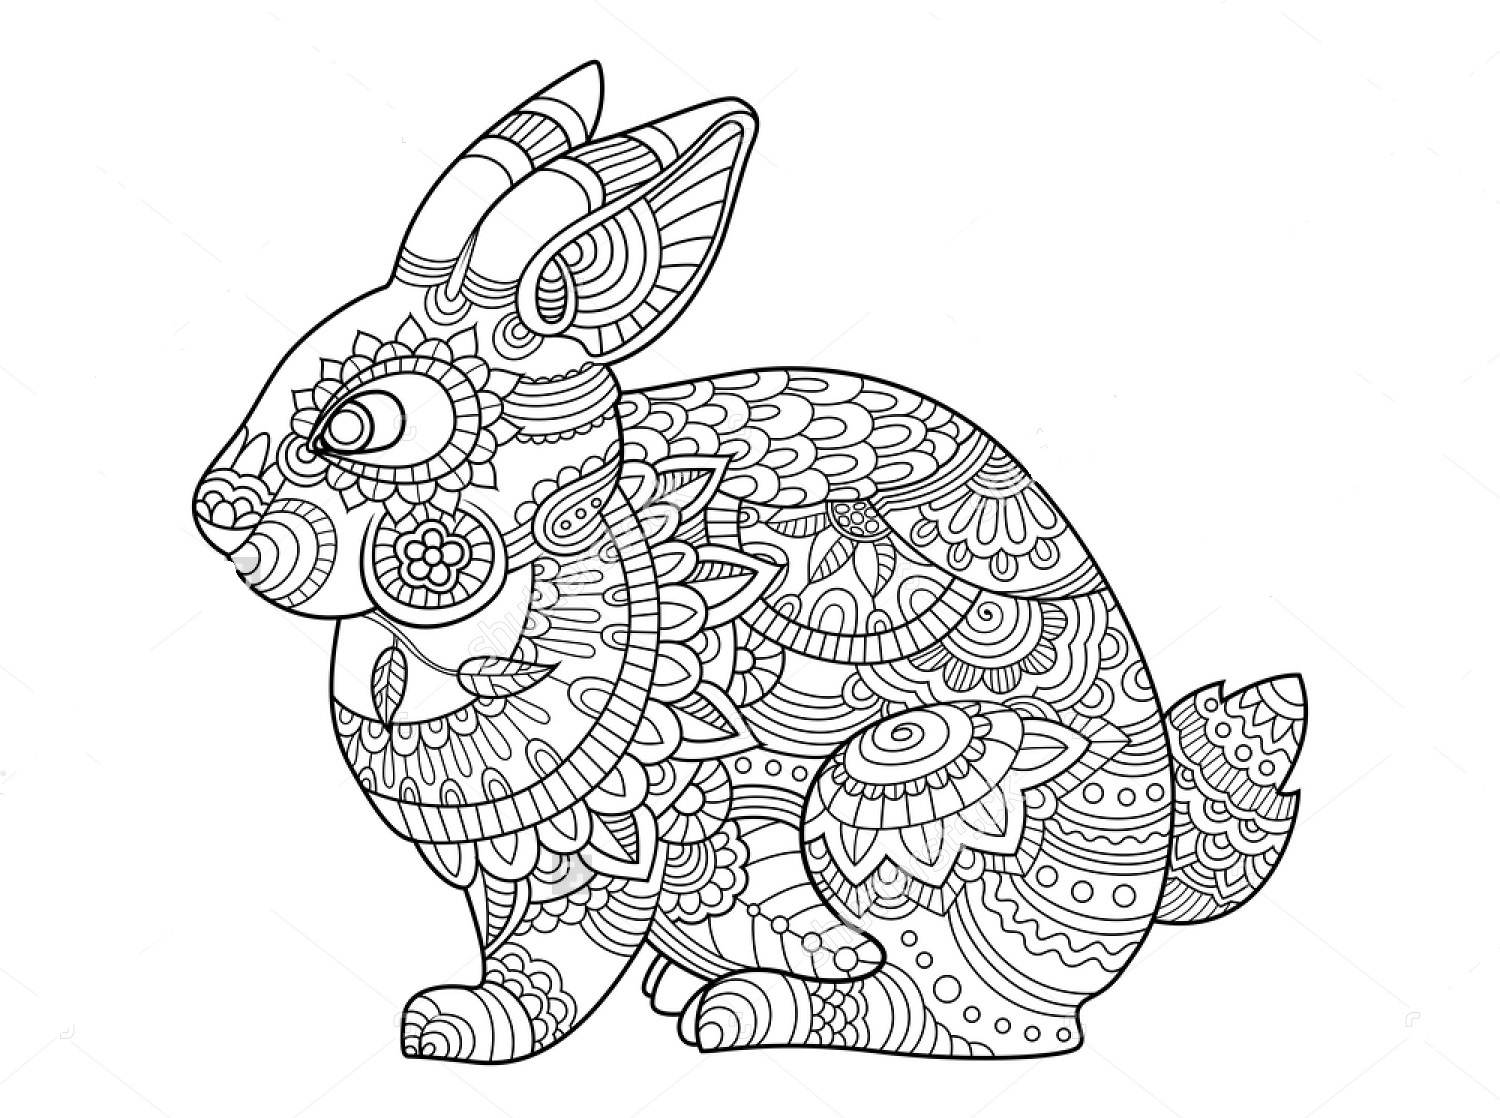 Coloring Pages Of A Rabbit Printable | Free Coloring Sheets